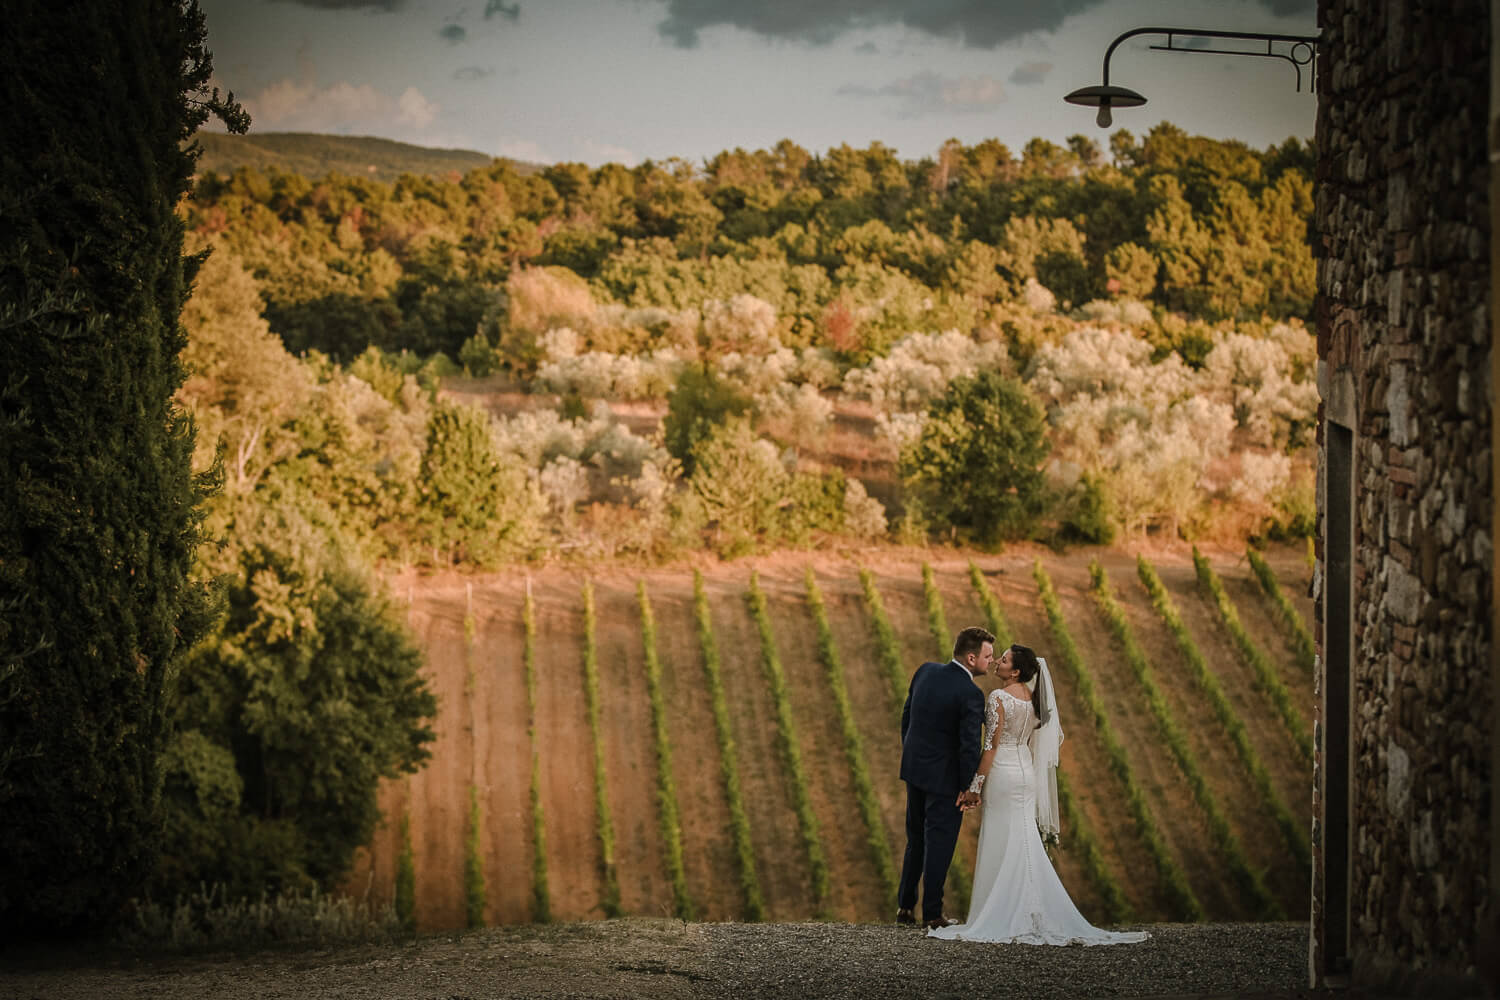 Beautiful wedding picture, bride and groom in Chianti hills. Tuscany wedding photographer